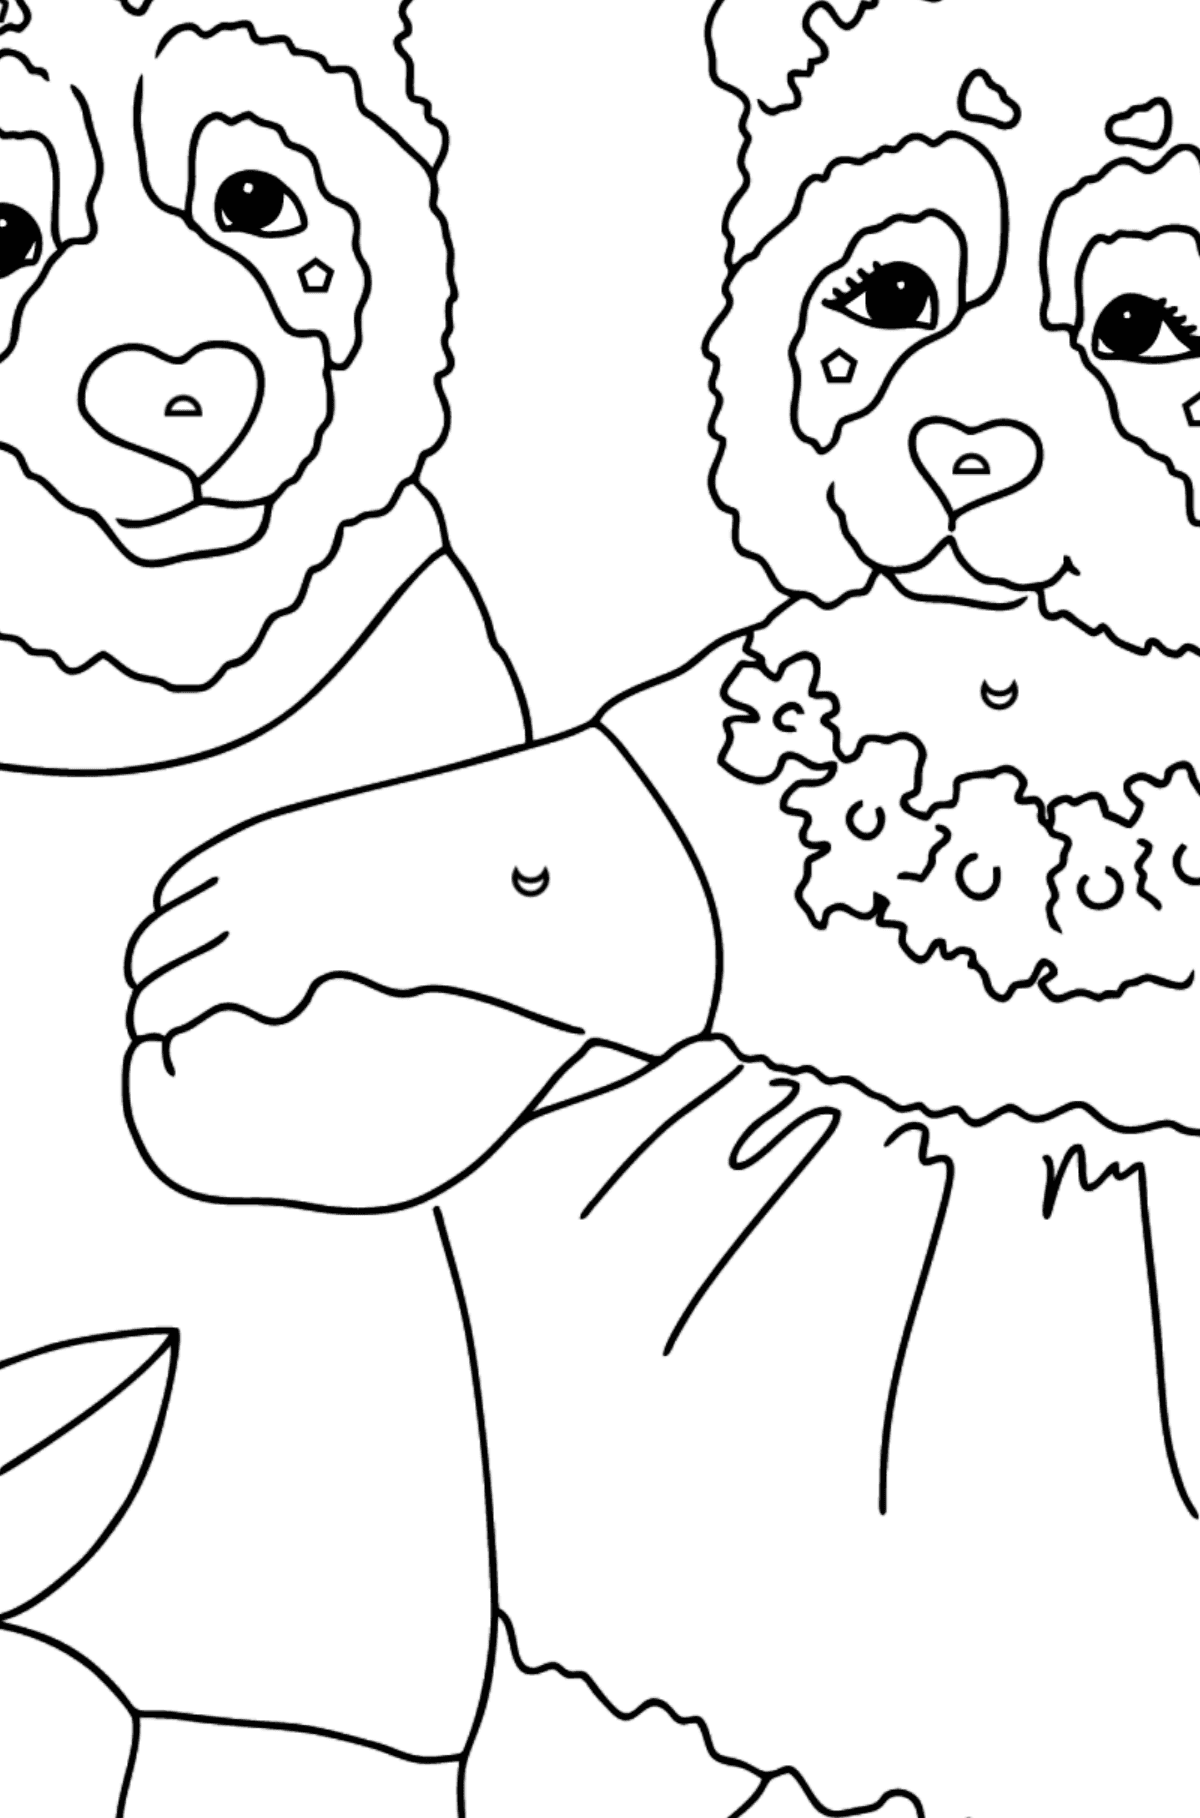 Coloring Page - Pandas Taking a Walk - Coloring by Geometric Shapes for Kids